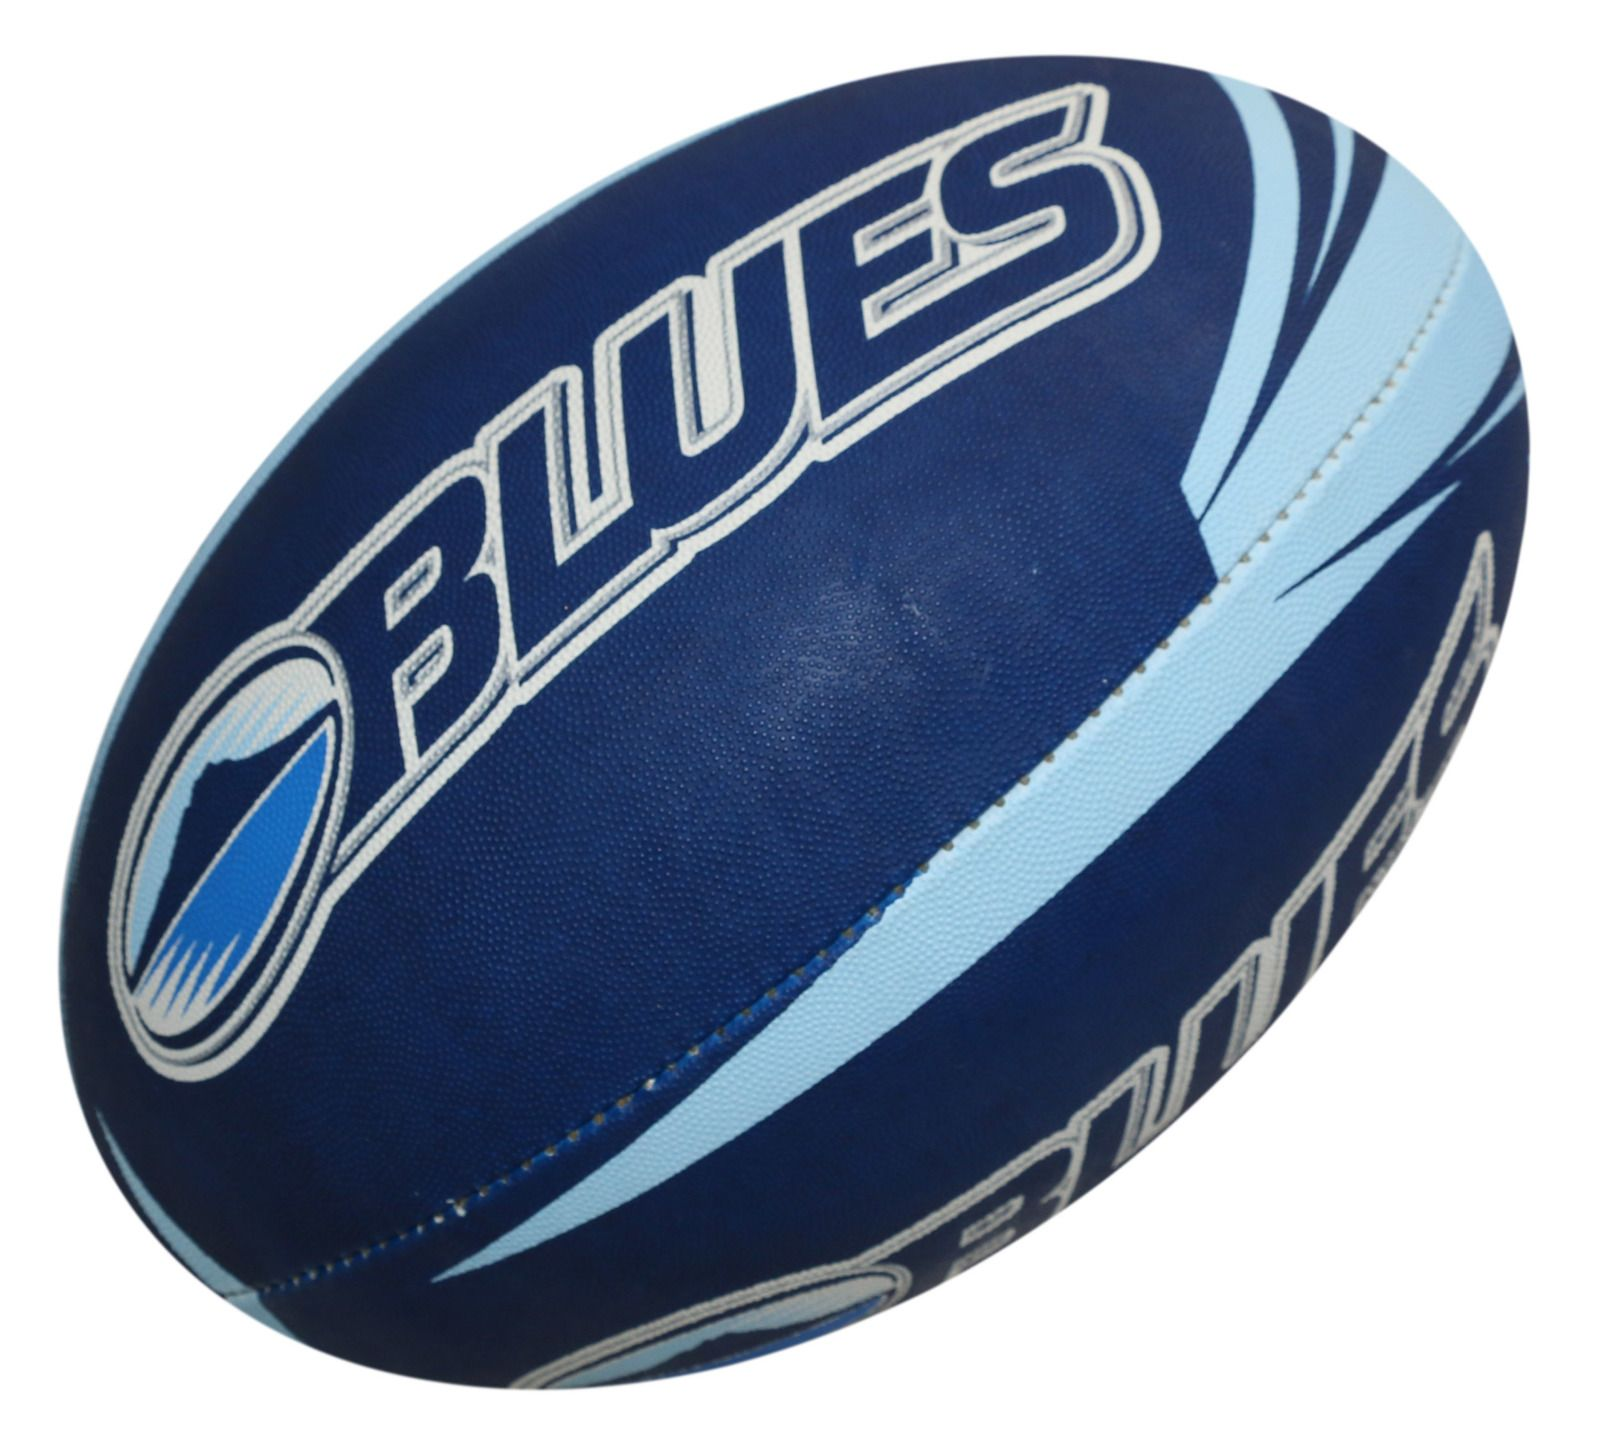 Gilbert Super Rugby Supporter Blues Midi In 2020 Super Rugby Rugby Rugby Ball